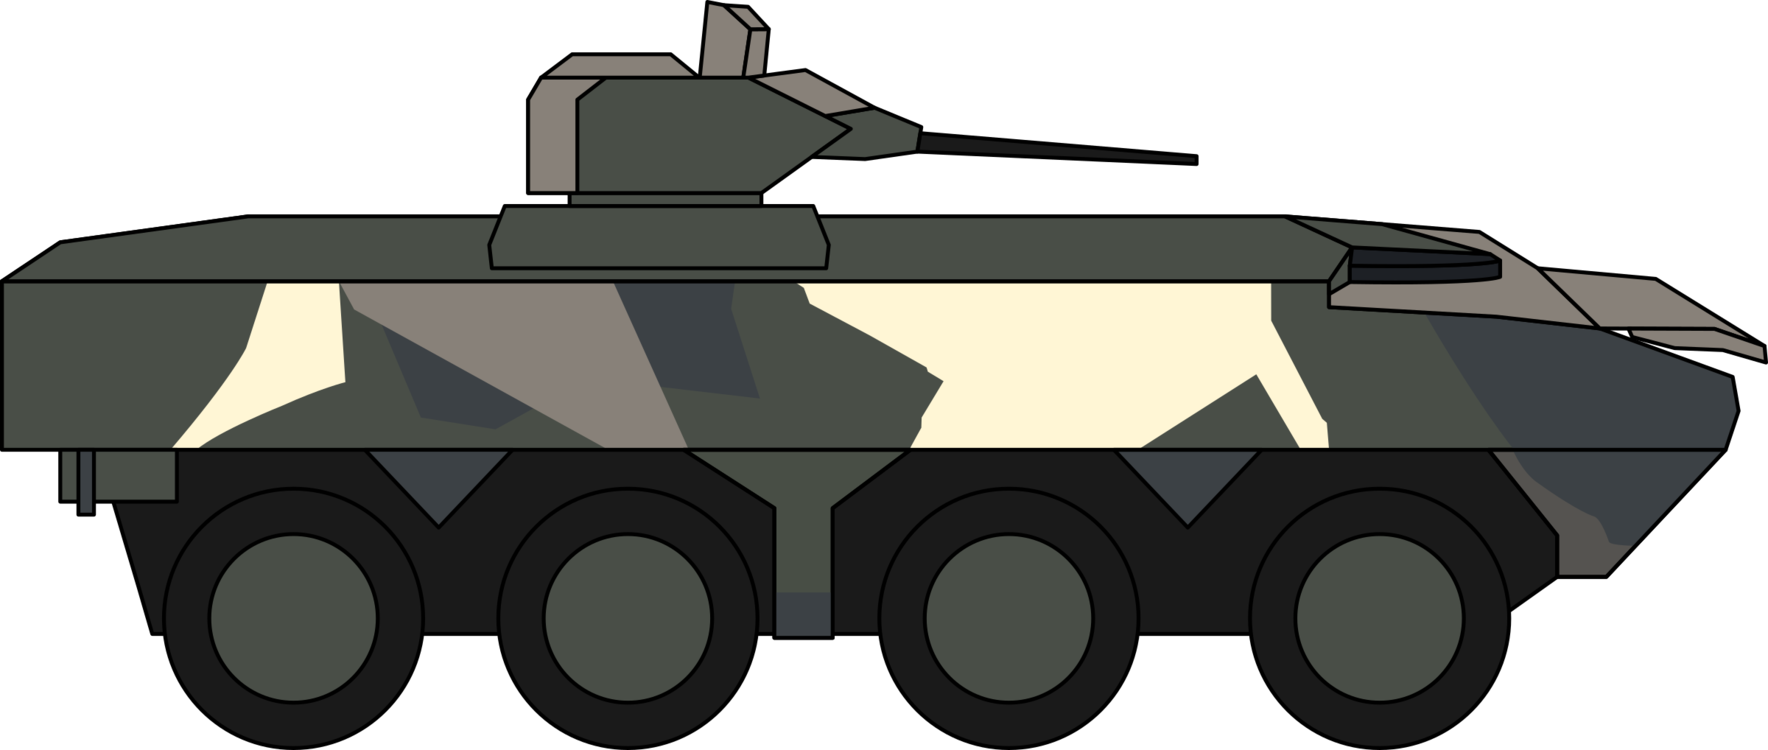 Tank clipart toy. Humvee car military vehicle